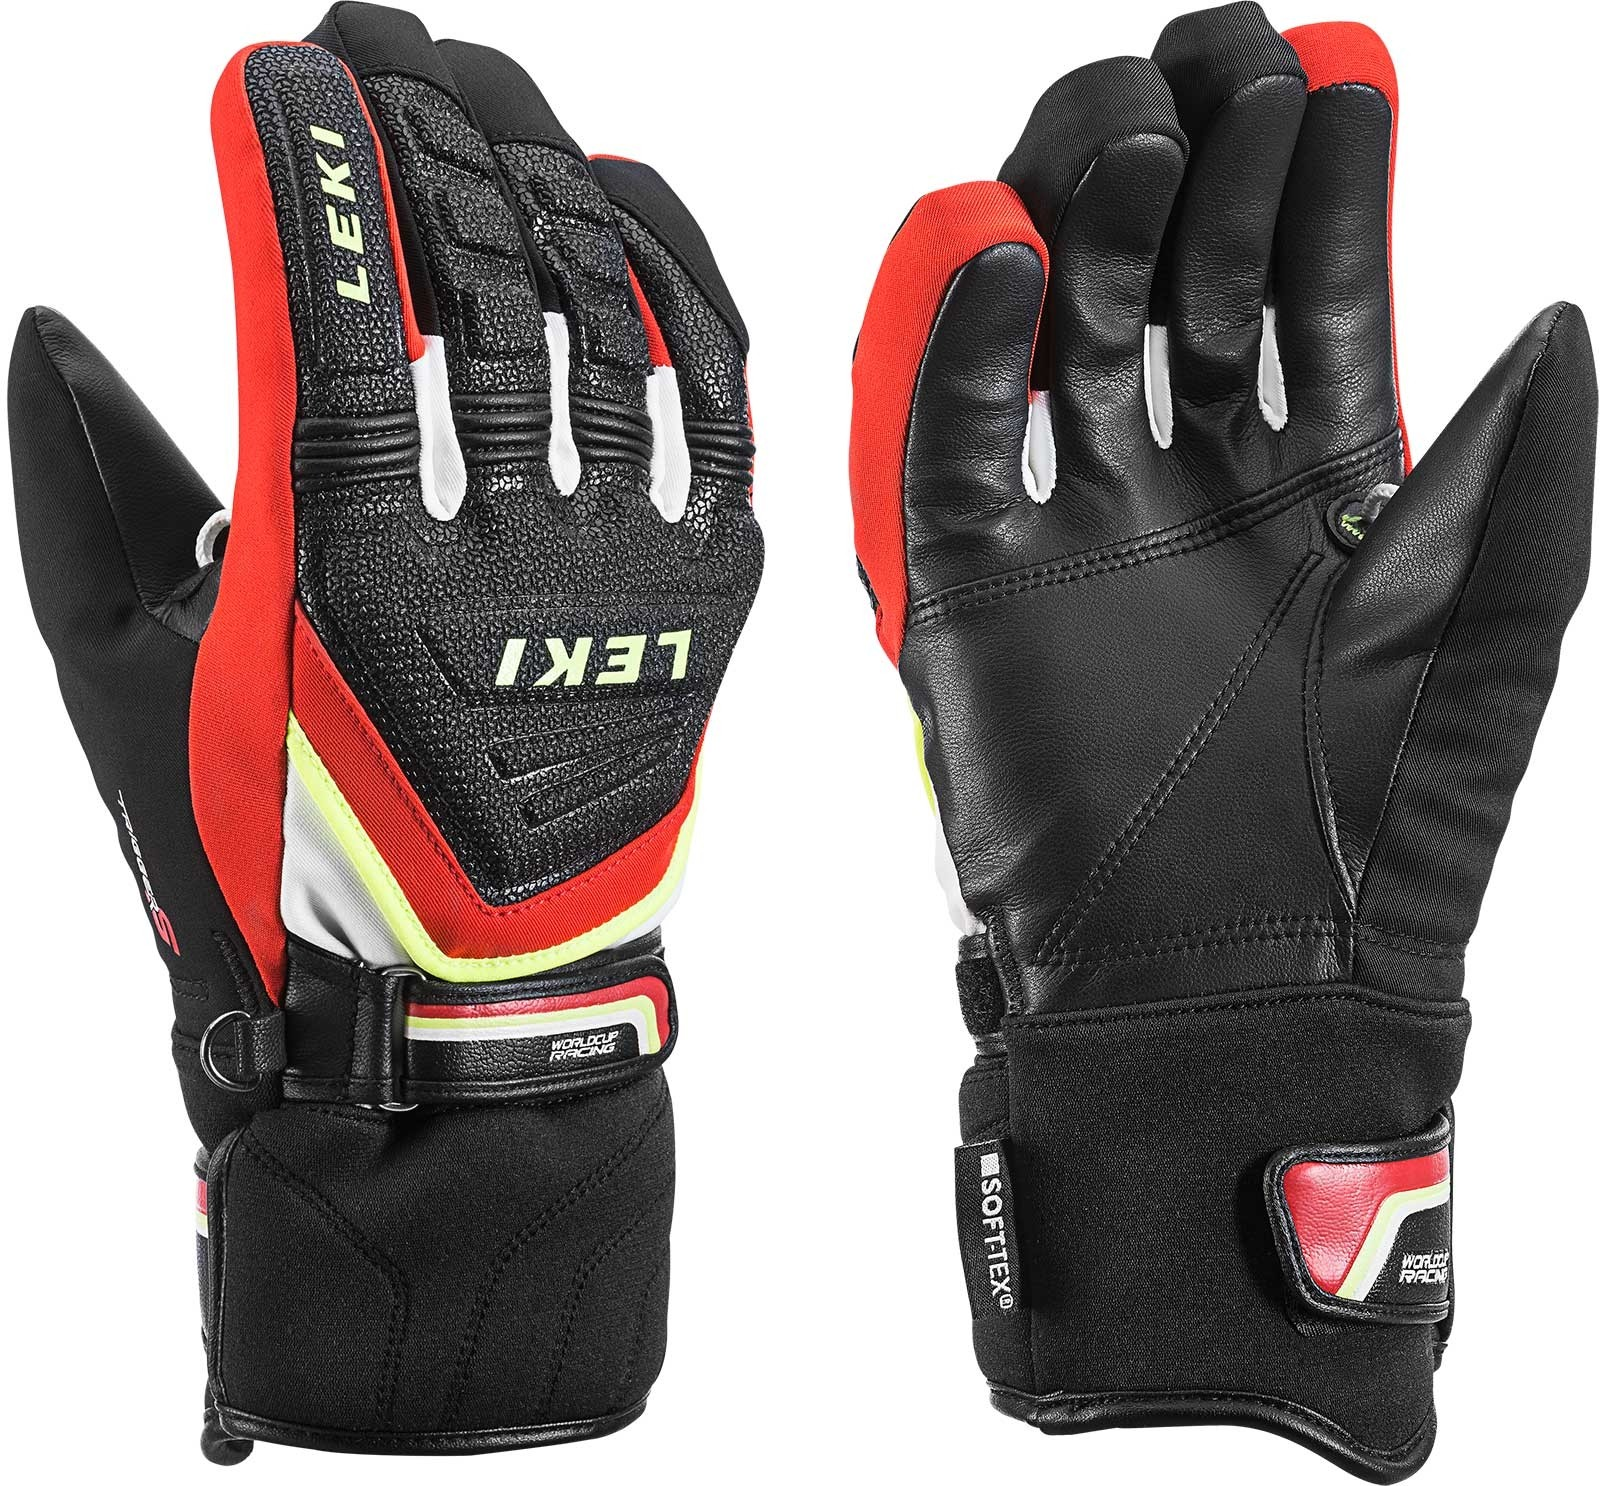 Leki Race Coach C-tech S junior ski gloves, 2018